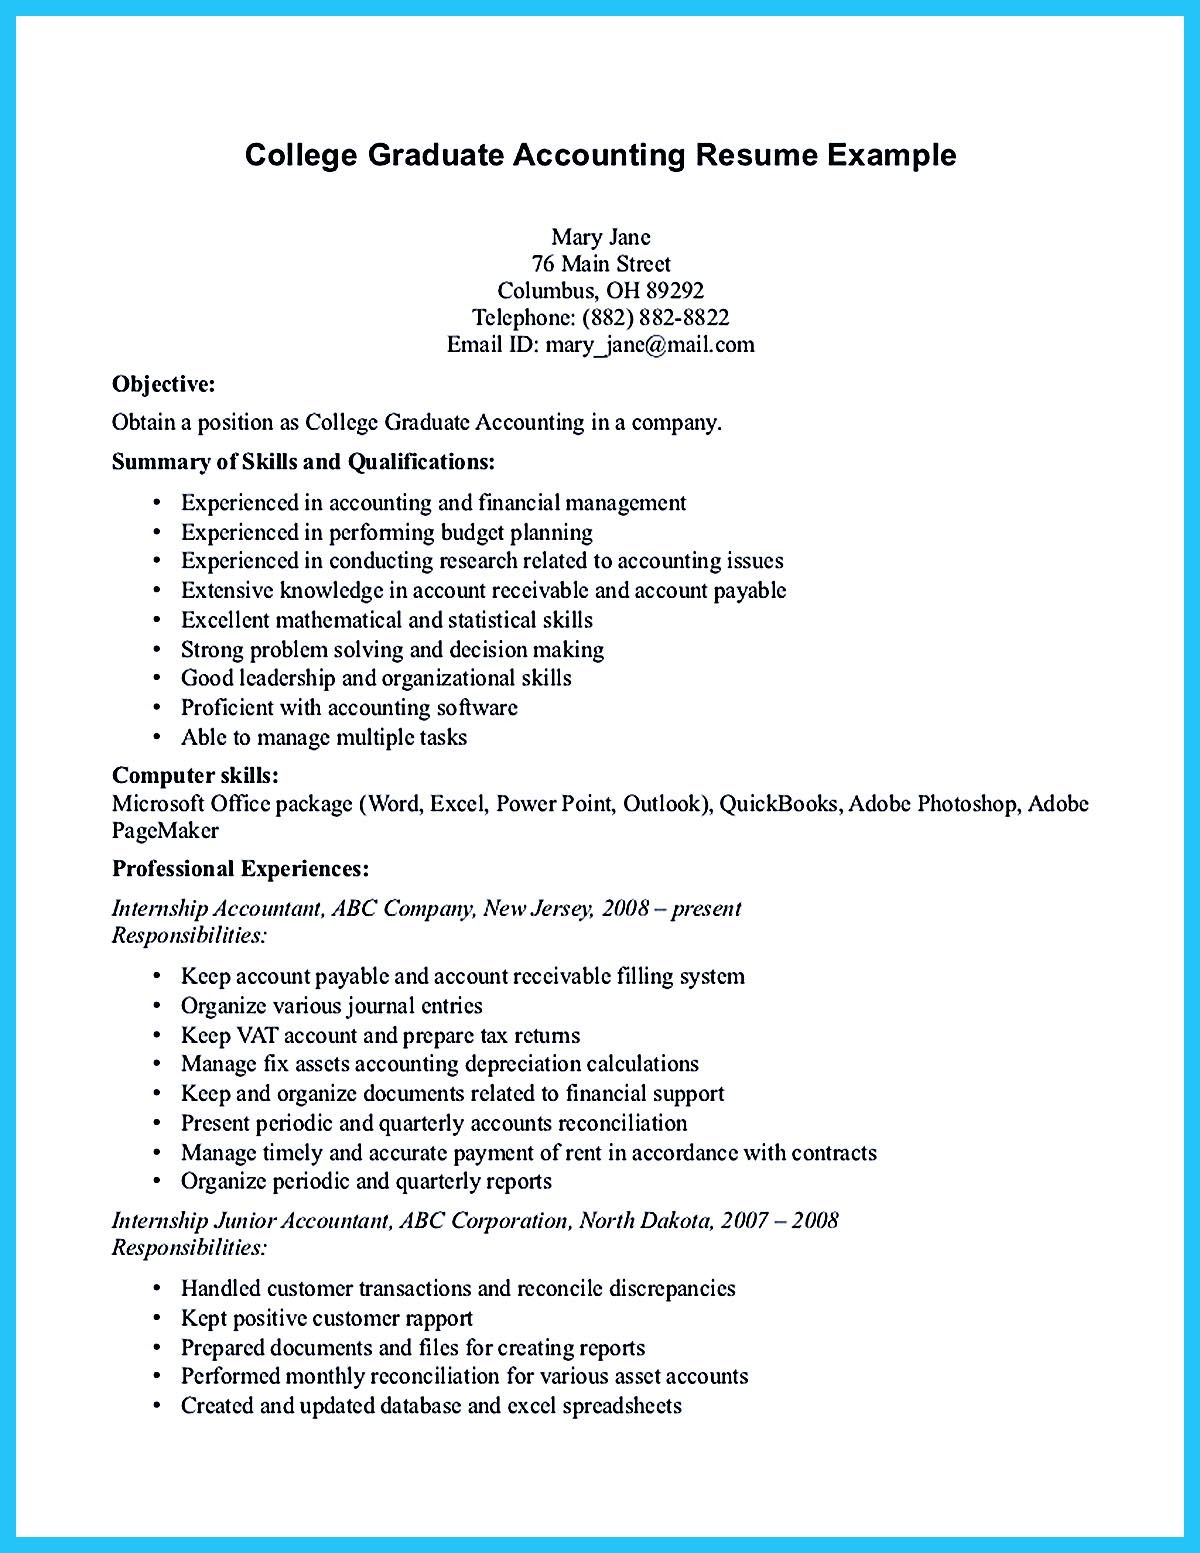 Account Receivable Resume Accounting Student Resume Here Presents How The Resume Of